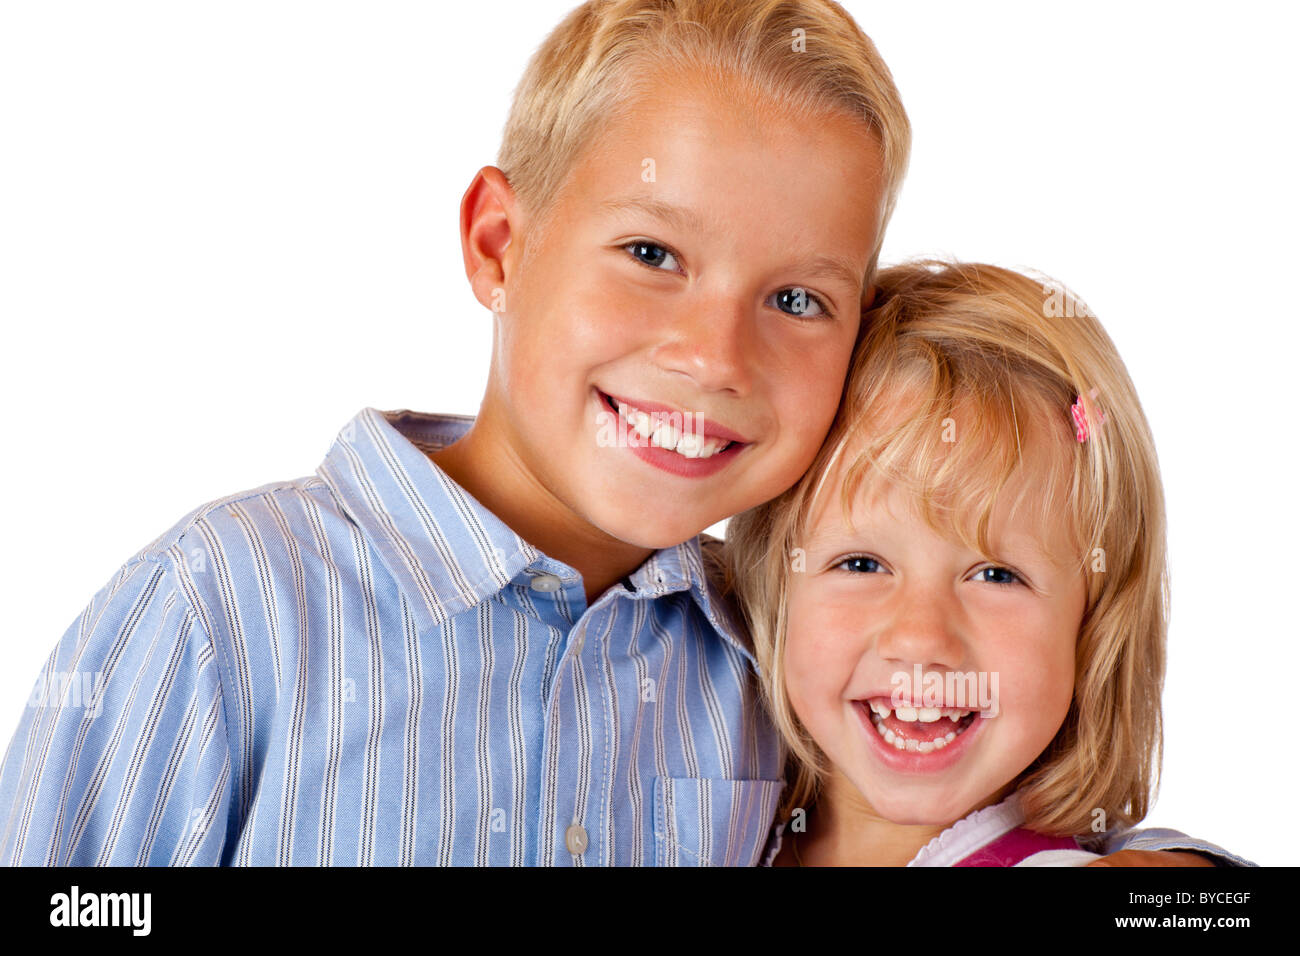 Boy and girl are smiling happy into camera. Isolated on white background. - Stock Image